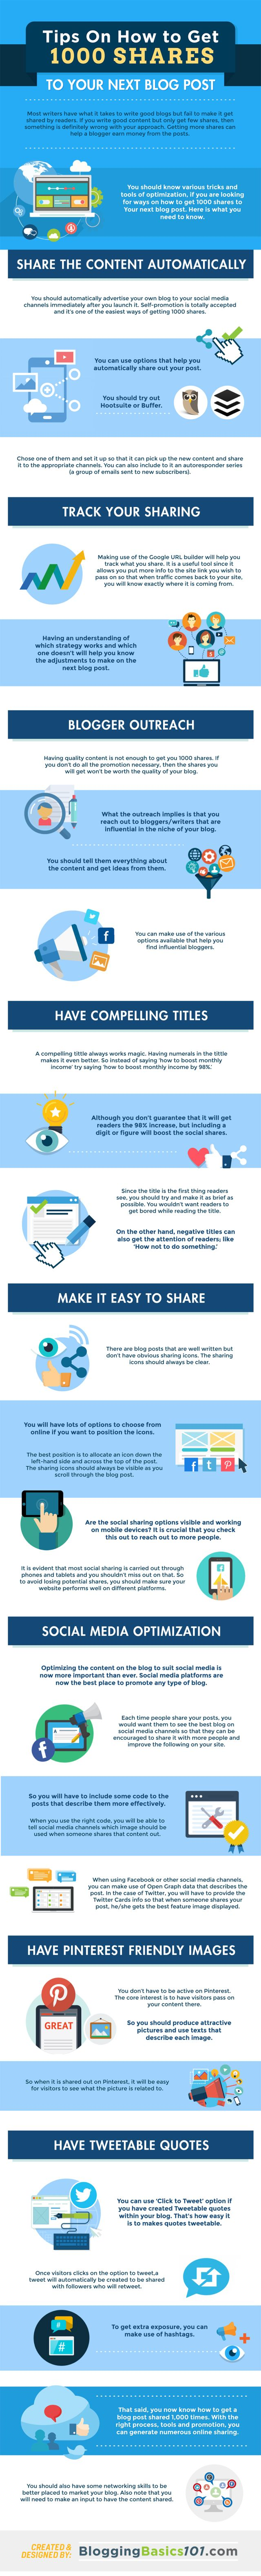 Get some tips on how to get more shares to your blog post! #blog #marketing https://goo.gl/kevQeH